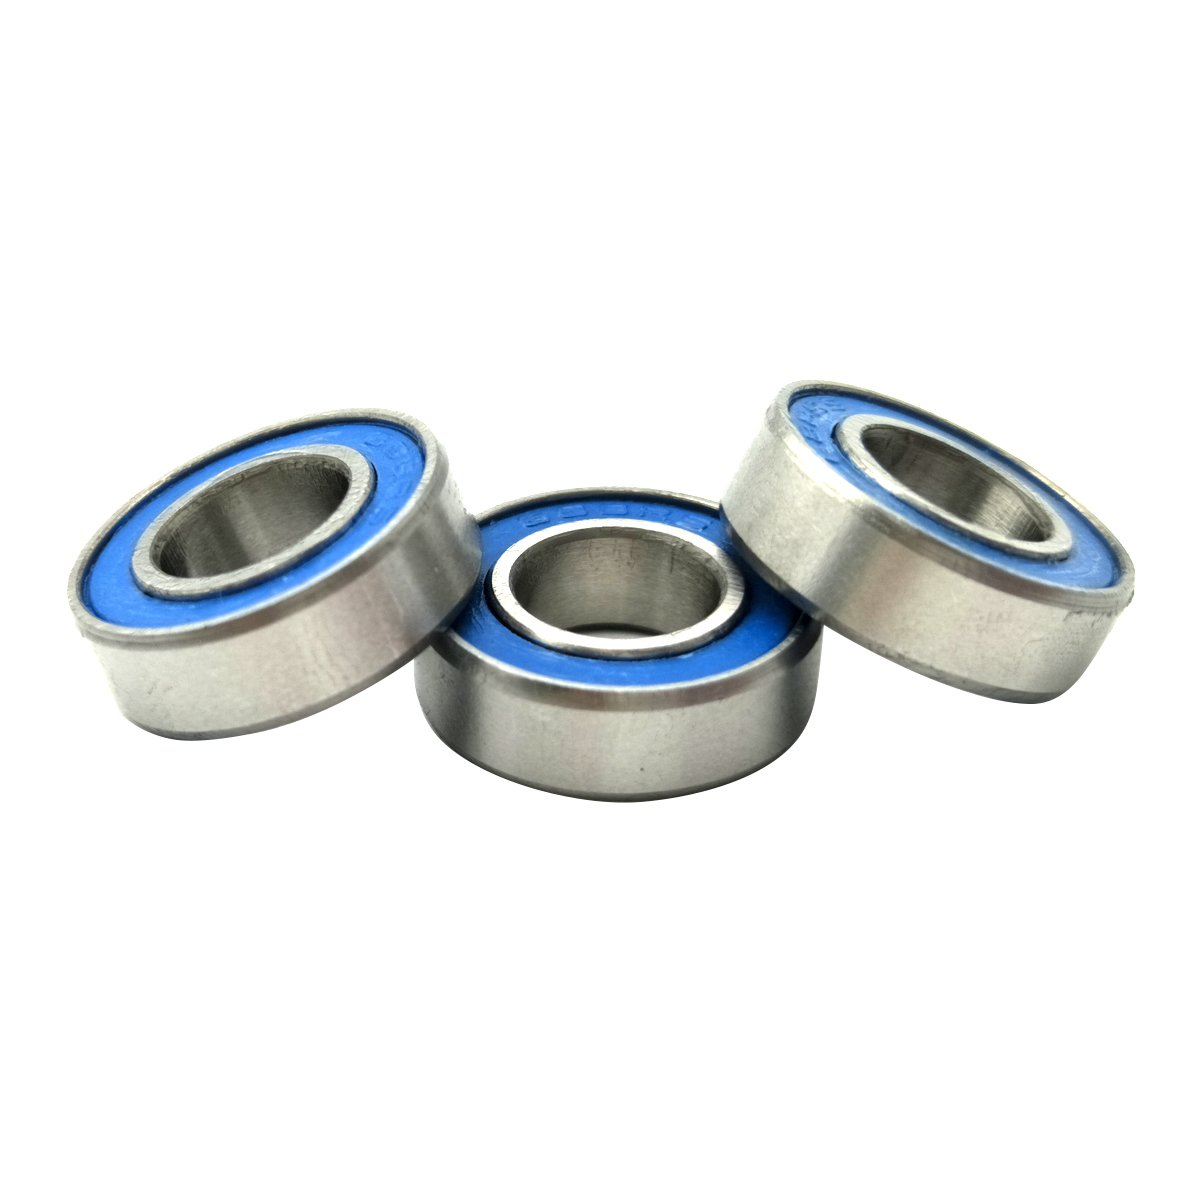 WOSKY 8x16x5mm Replacement Precision Ball Bearings ABEC 3 Rubber Seals 688-2RS-BU for Axial Arrma ECX HPI Kyosho Mugen Traxxas Team Associated RC Cars park of 10